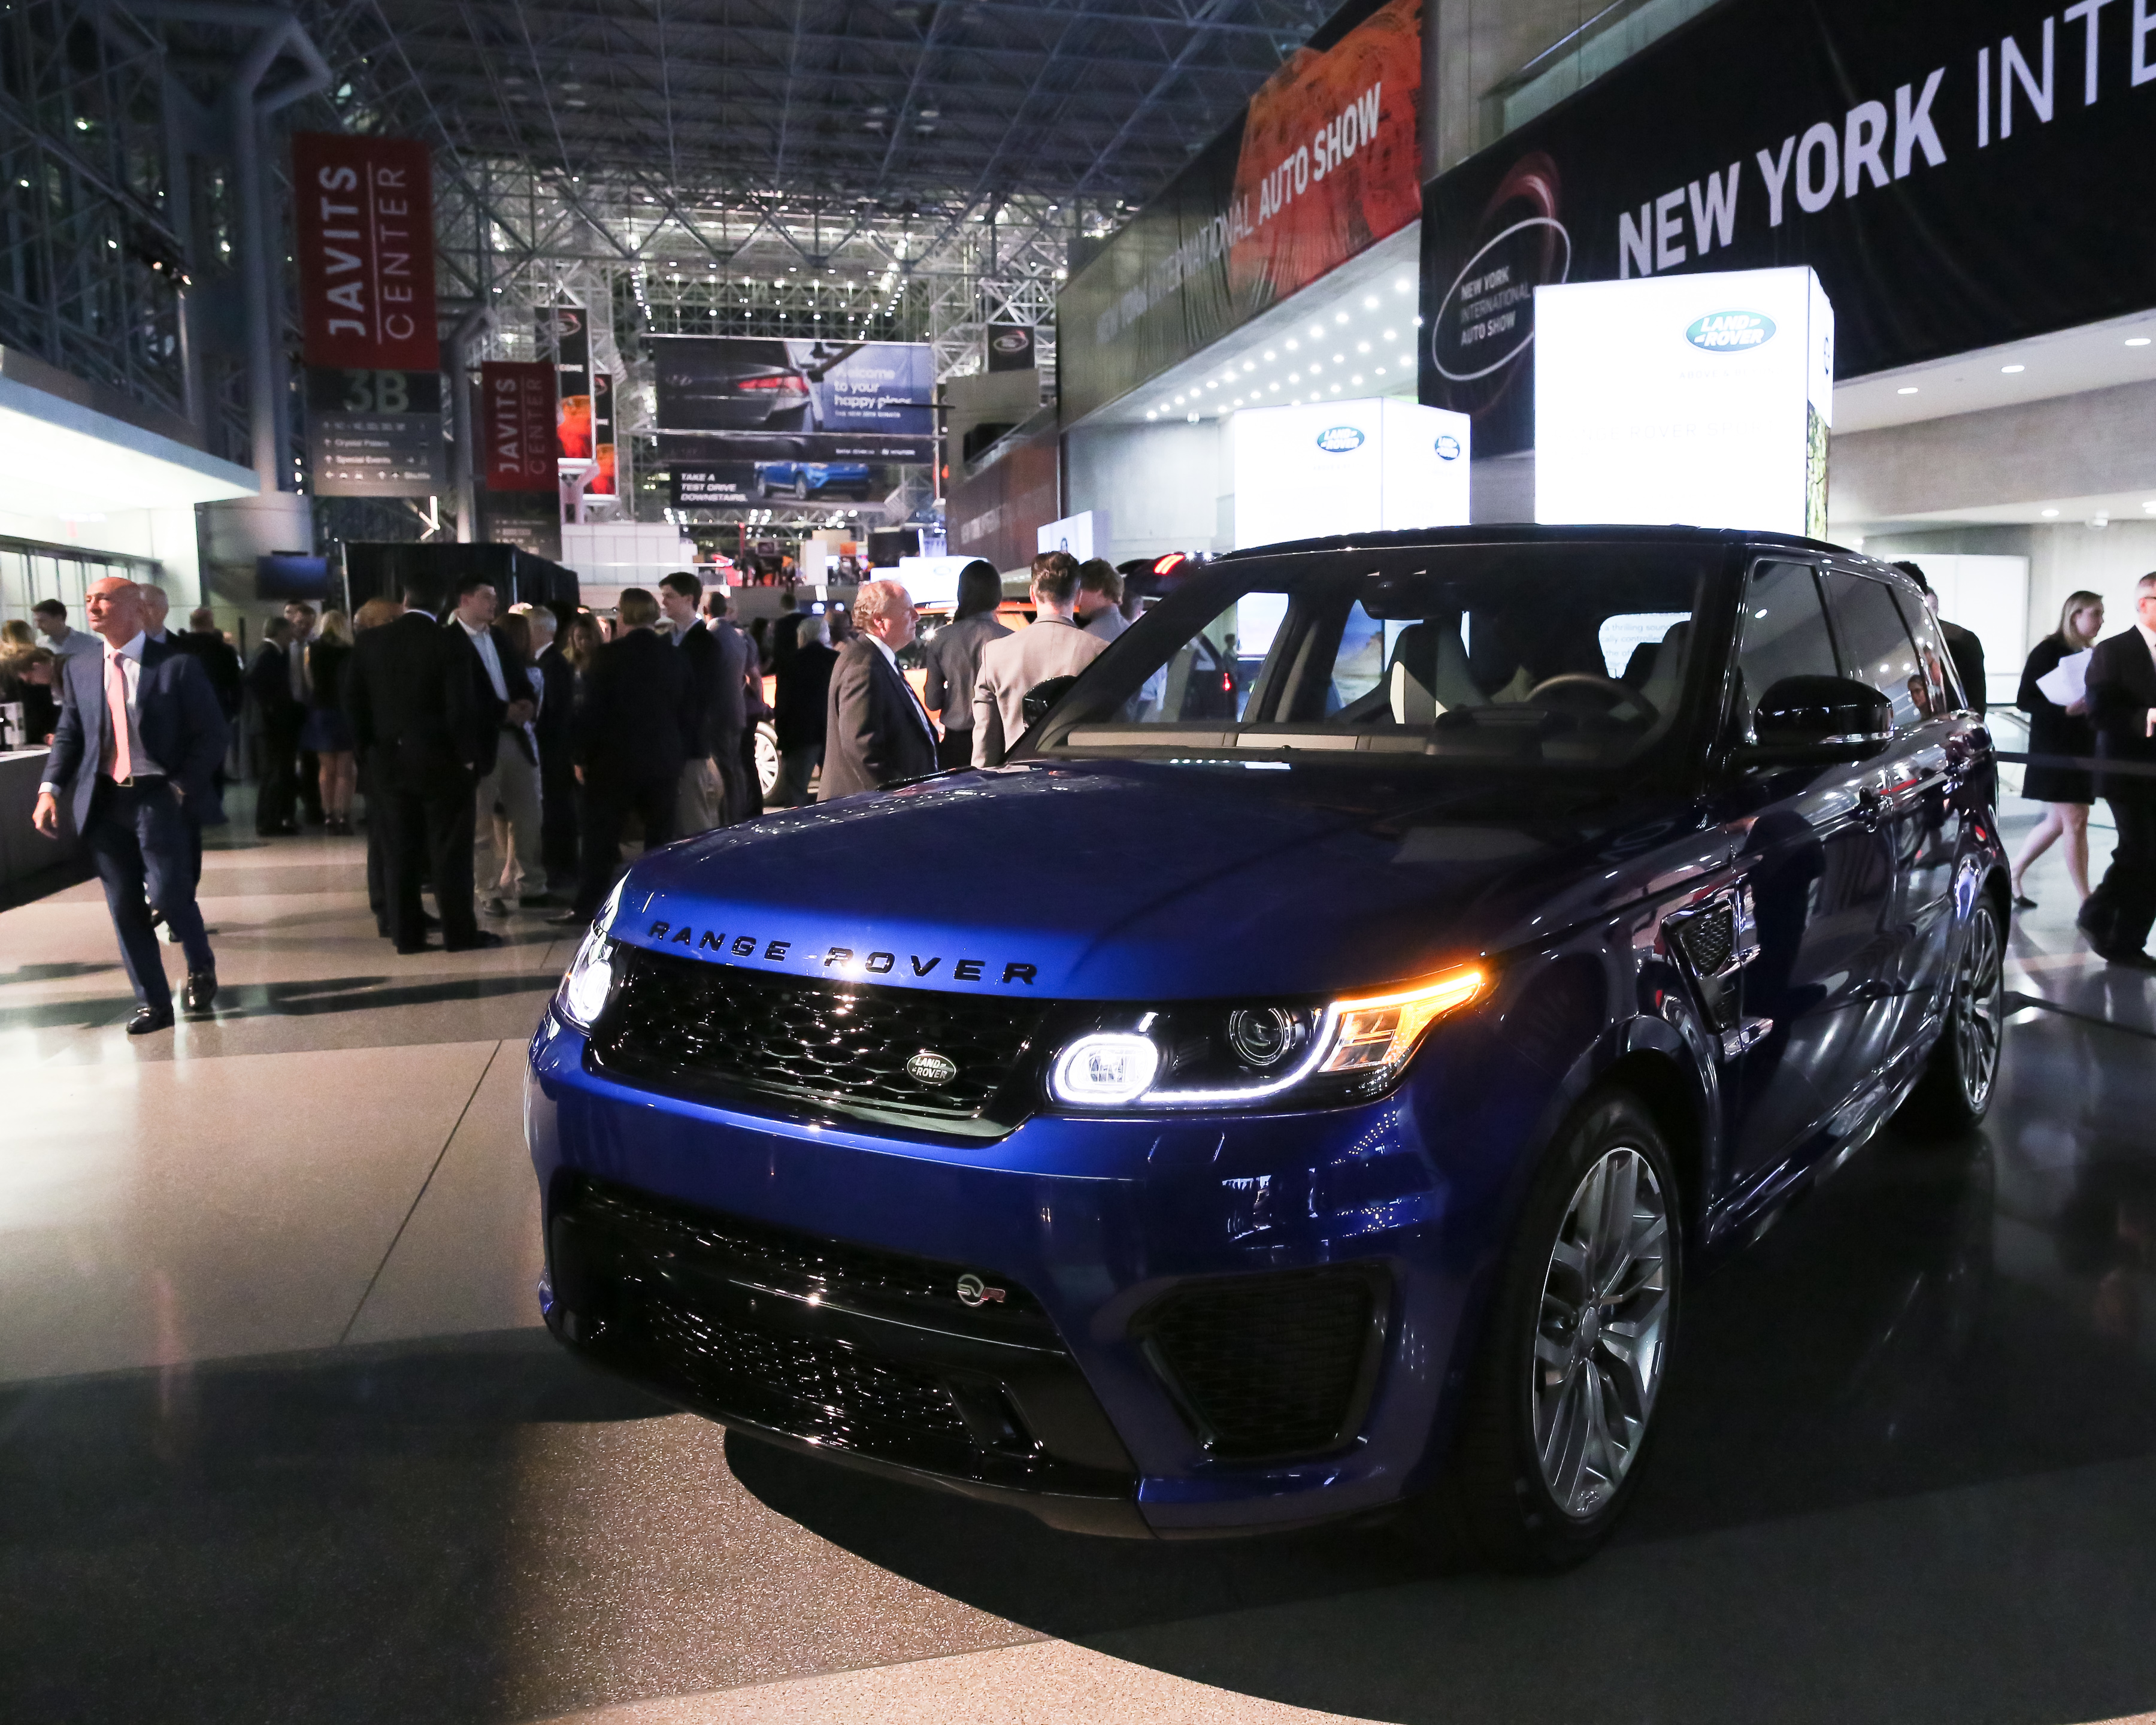 East Side House Settlement Hosts : the 18th Annual Gala Preview of the 2017 New York International Auto Show